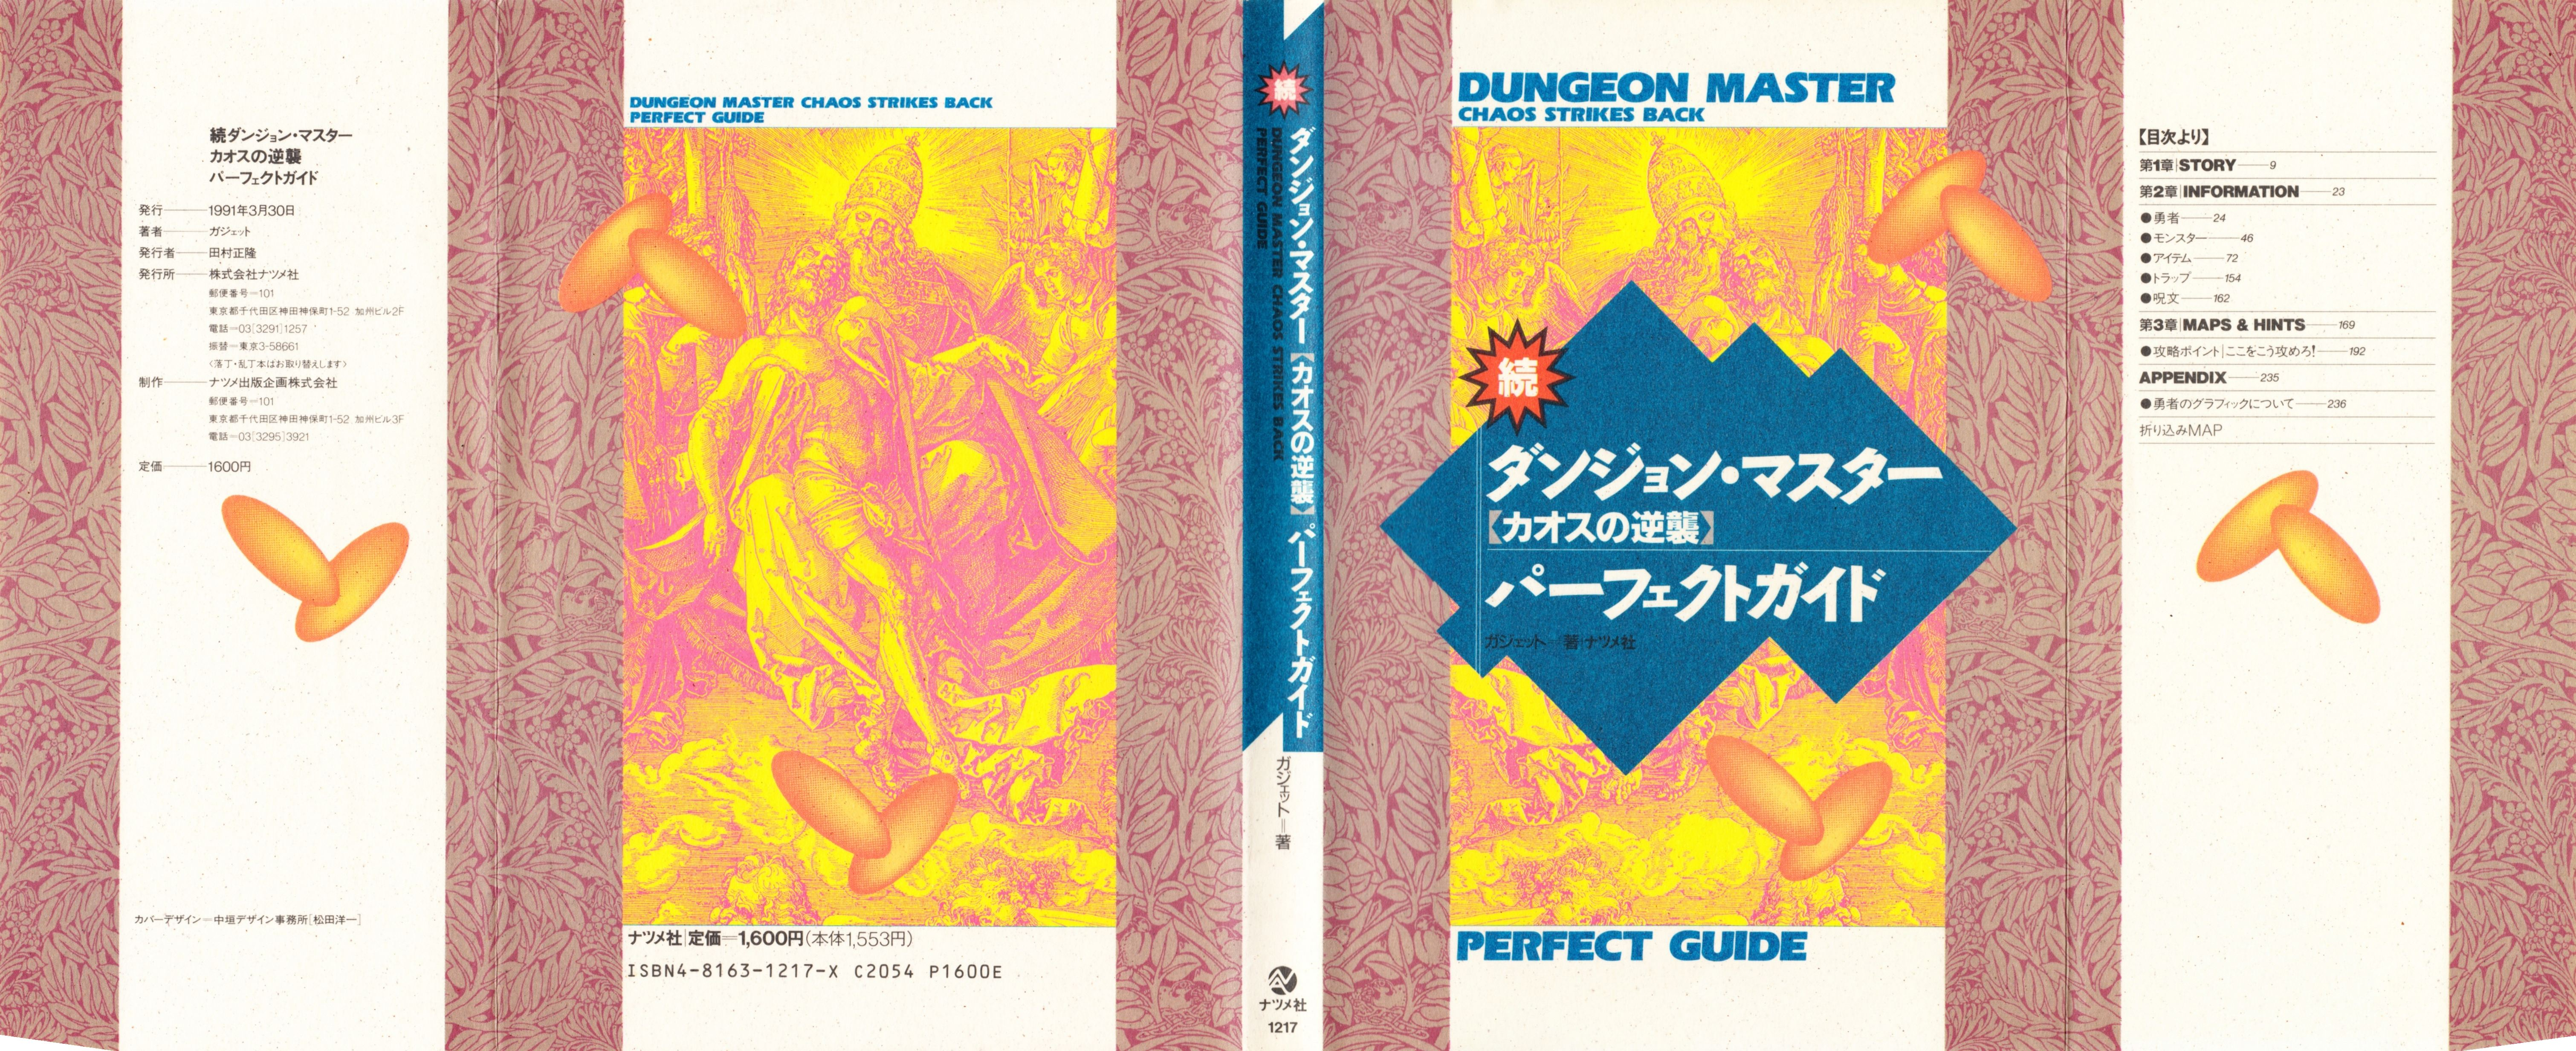 Hint Book - Dungeon Master Sequel Chaos Strikes Back Perfect Guide - JP - Dust Jacket - Front - Scan